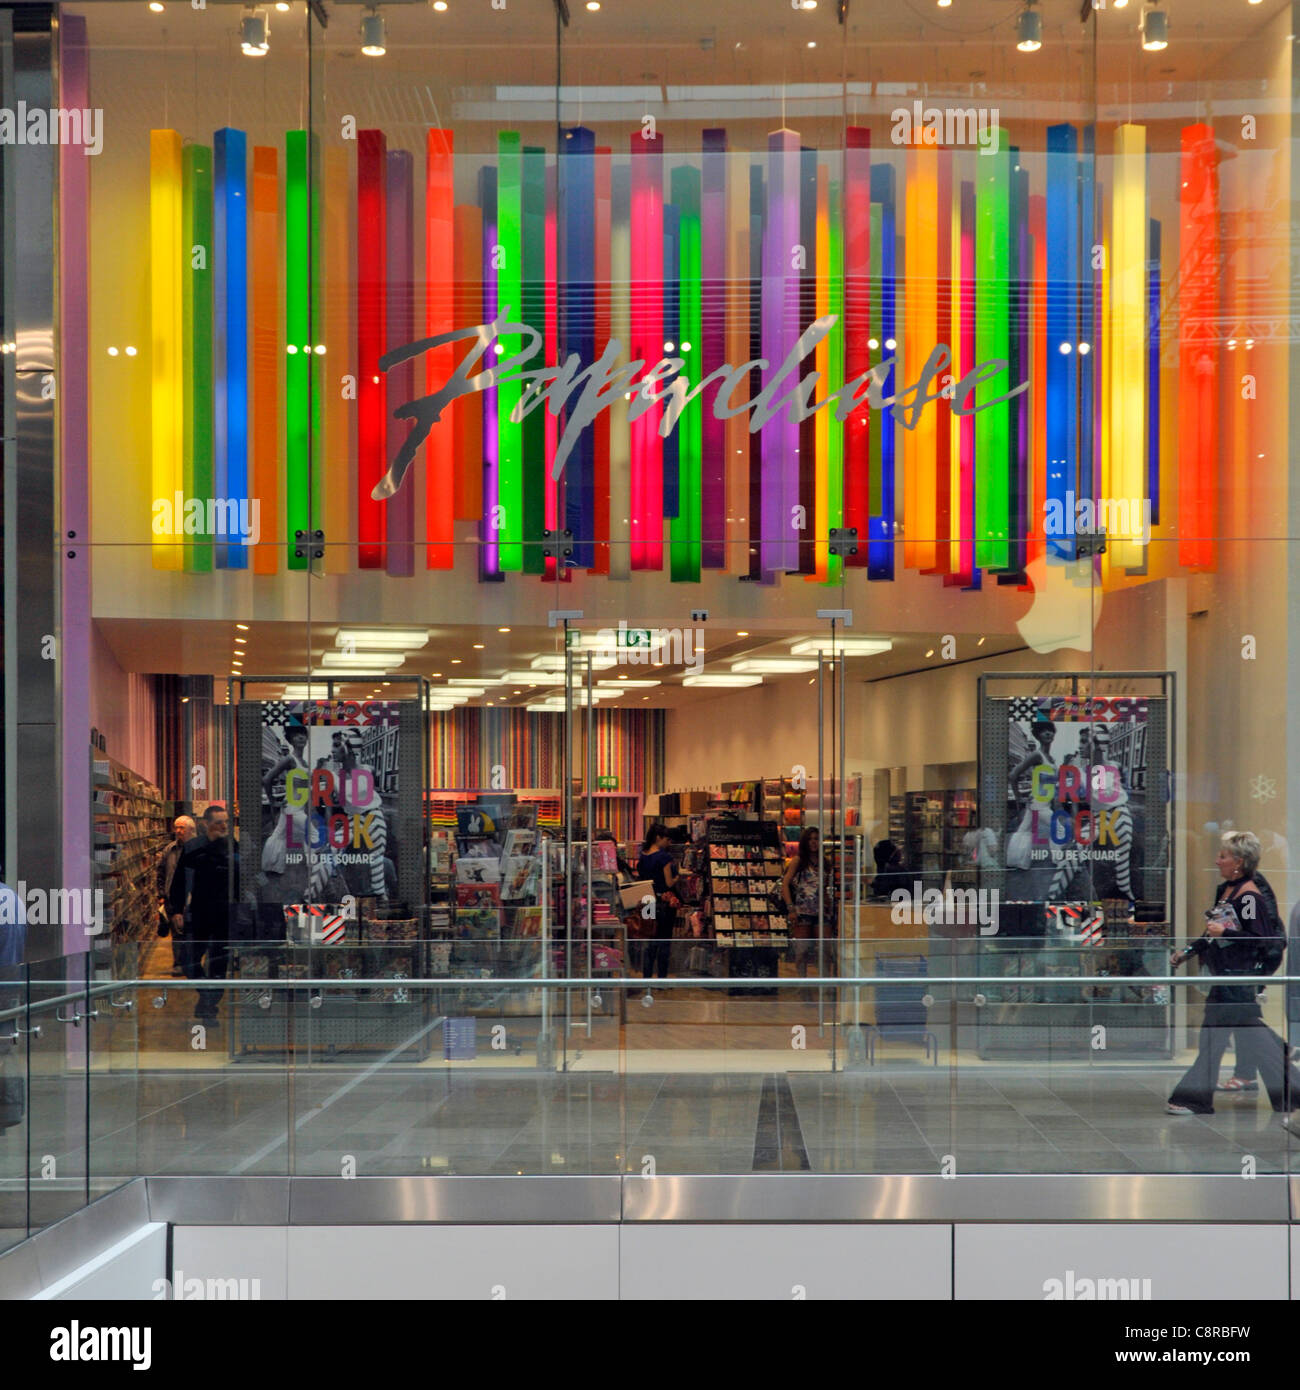 Colourful Paperchase stationery & greeting cards shop front in a mall at the Westfield shopping centre at Stratford - Stock Image